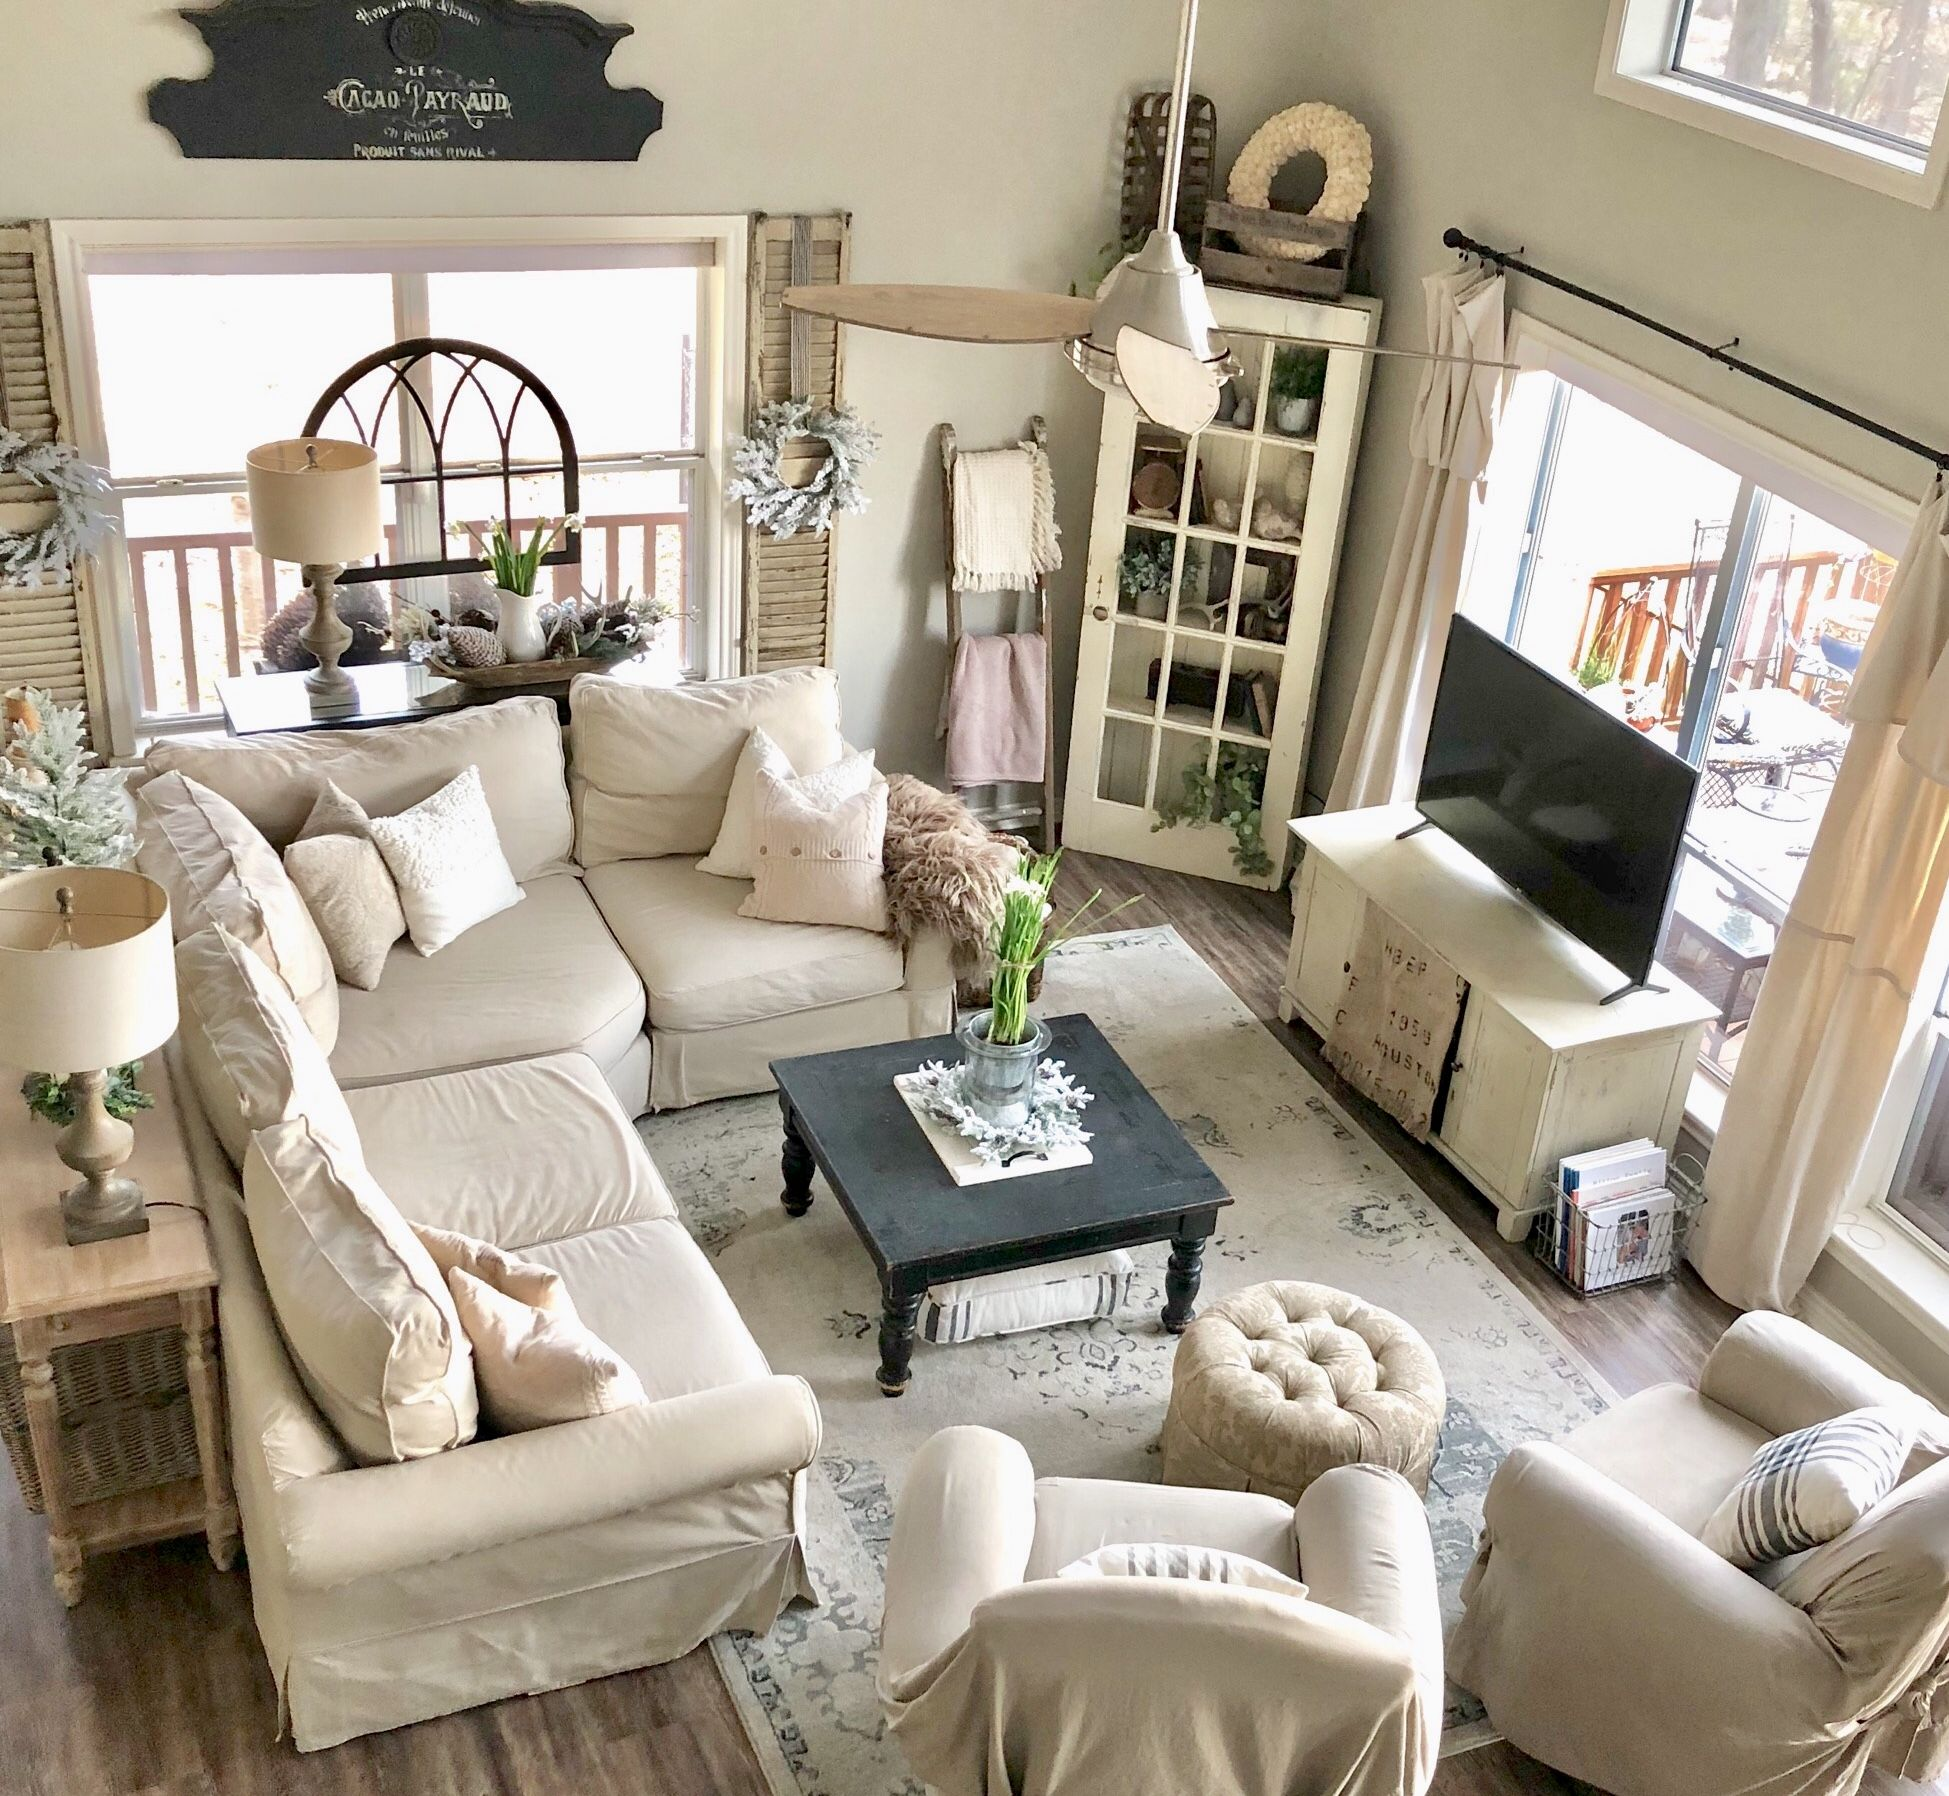 33 Best Christmas Country Living Room Decorating Ideas: Happy New Year Friends! I Hope You Have Your Best Year Yet